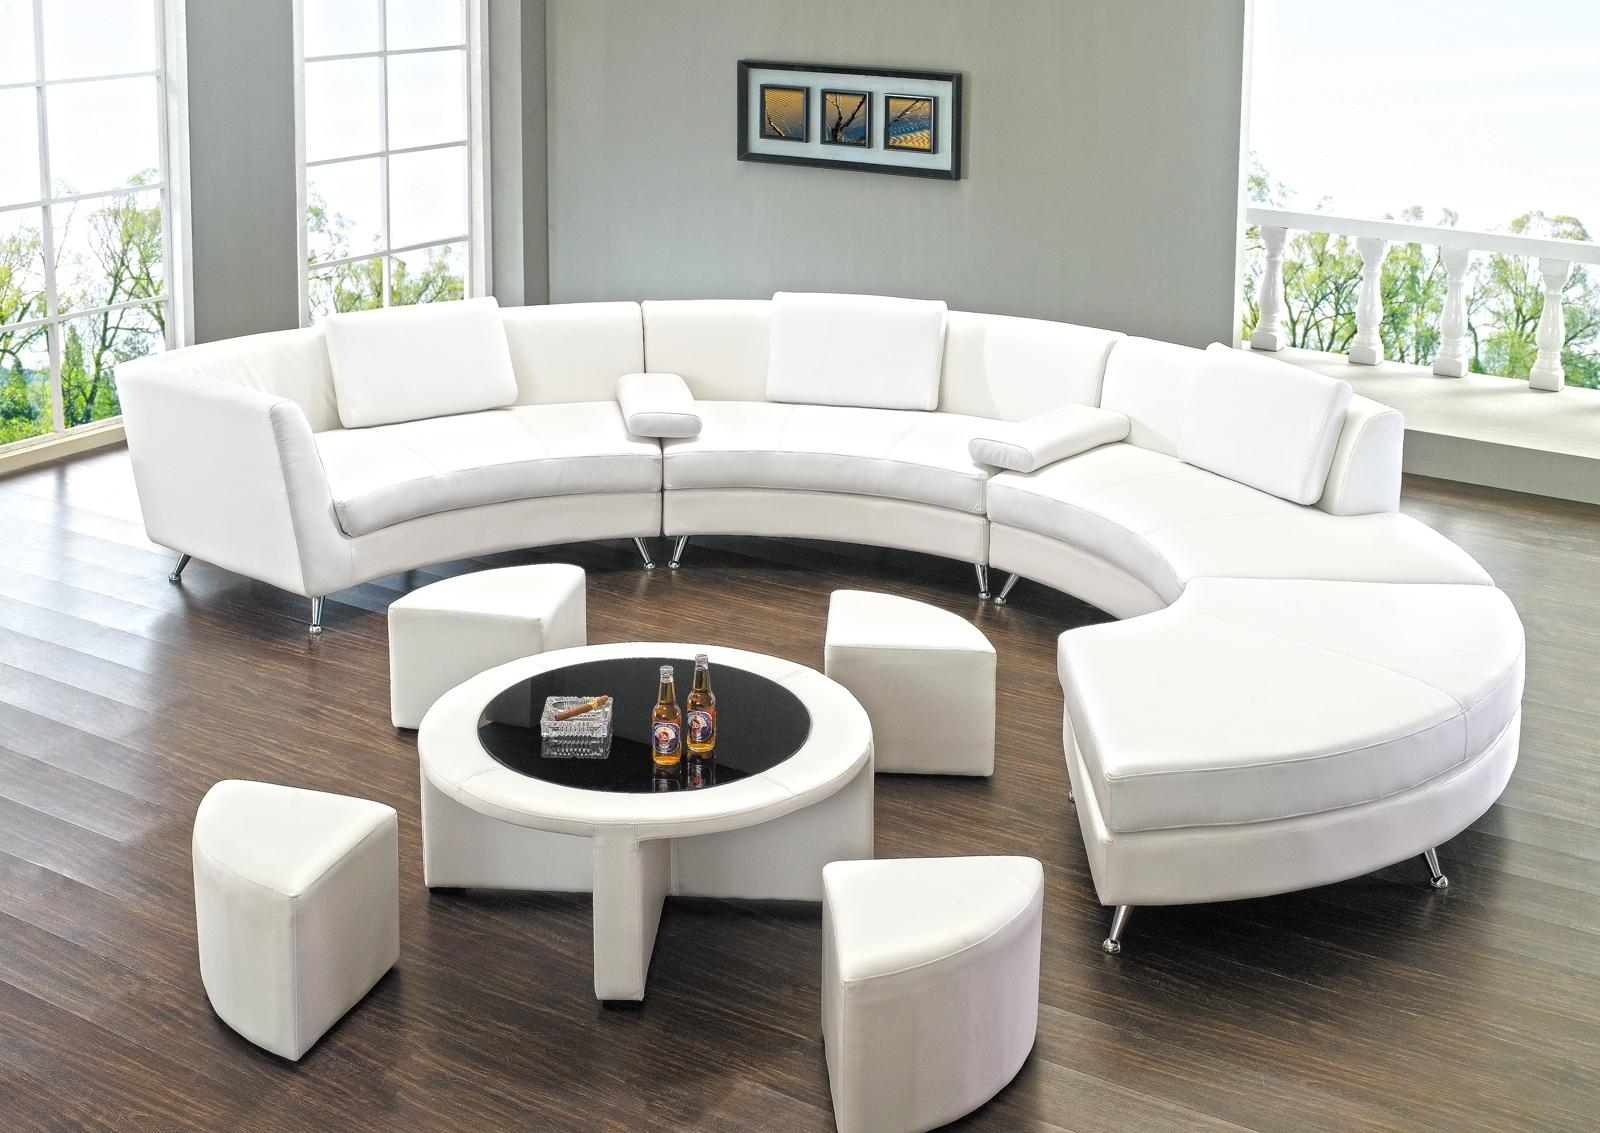 Round Sectional Sofa | Winda 7 Furniture Inside Rounded Sofa (View 8 of 20)